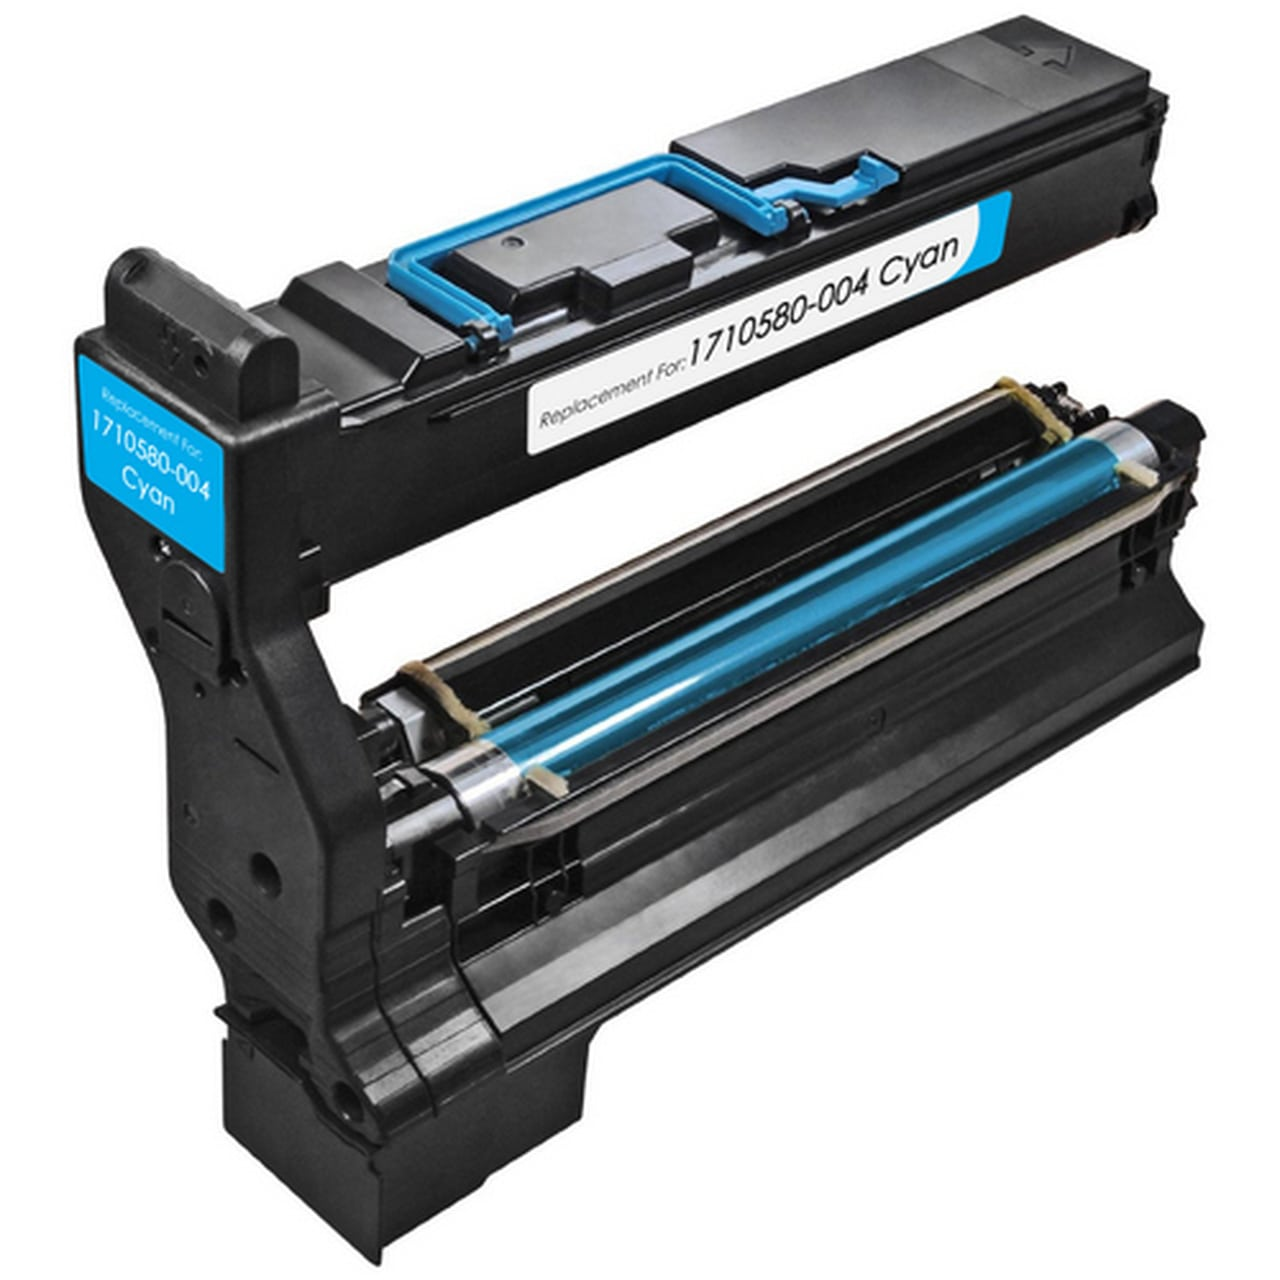 Compatible Konica-Minolta 1710580-004 Cyan Toner Cartridge